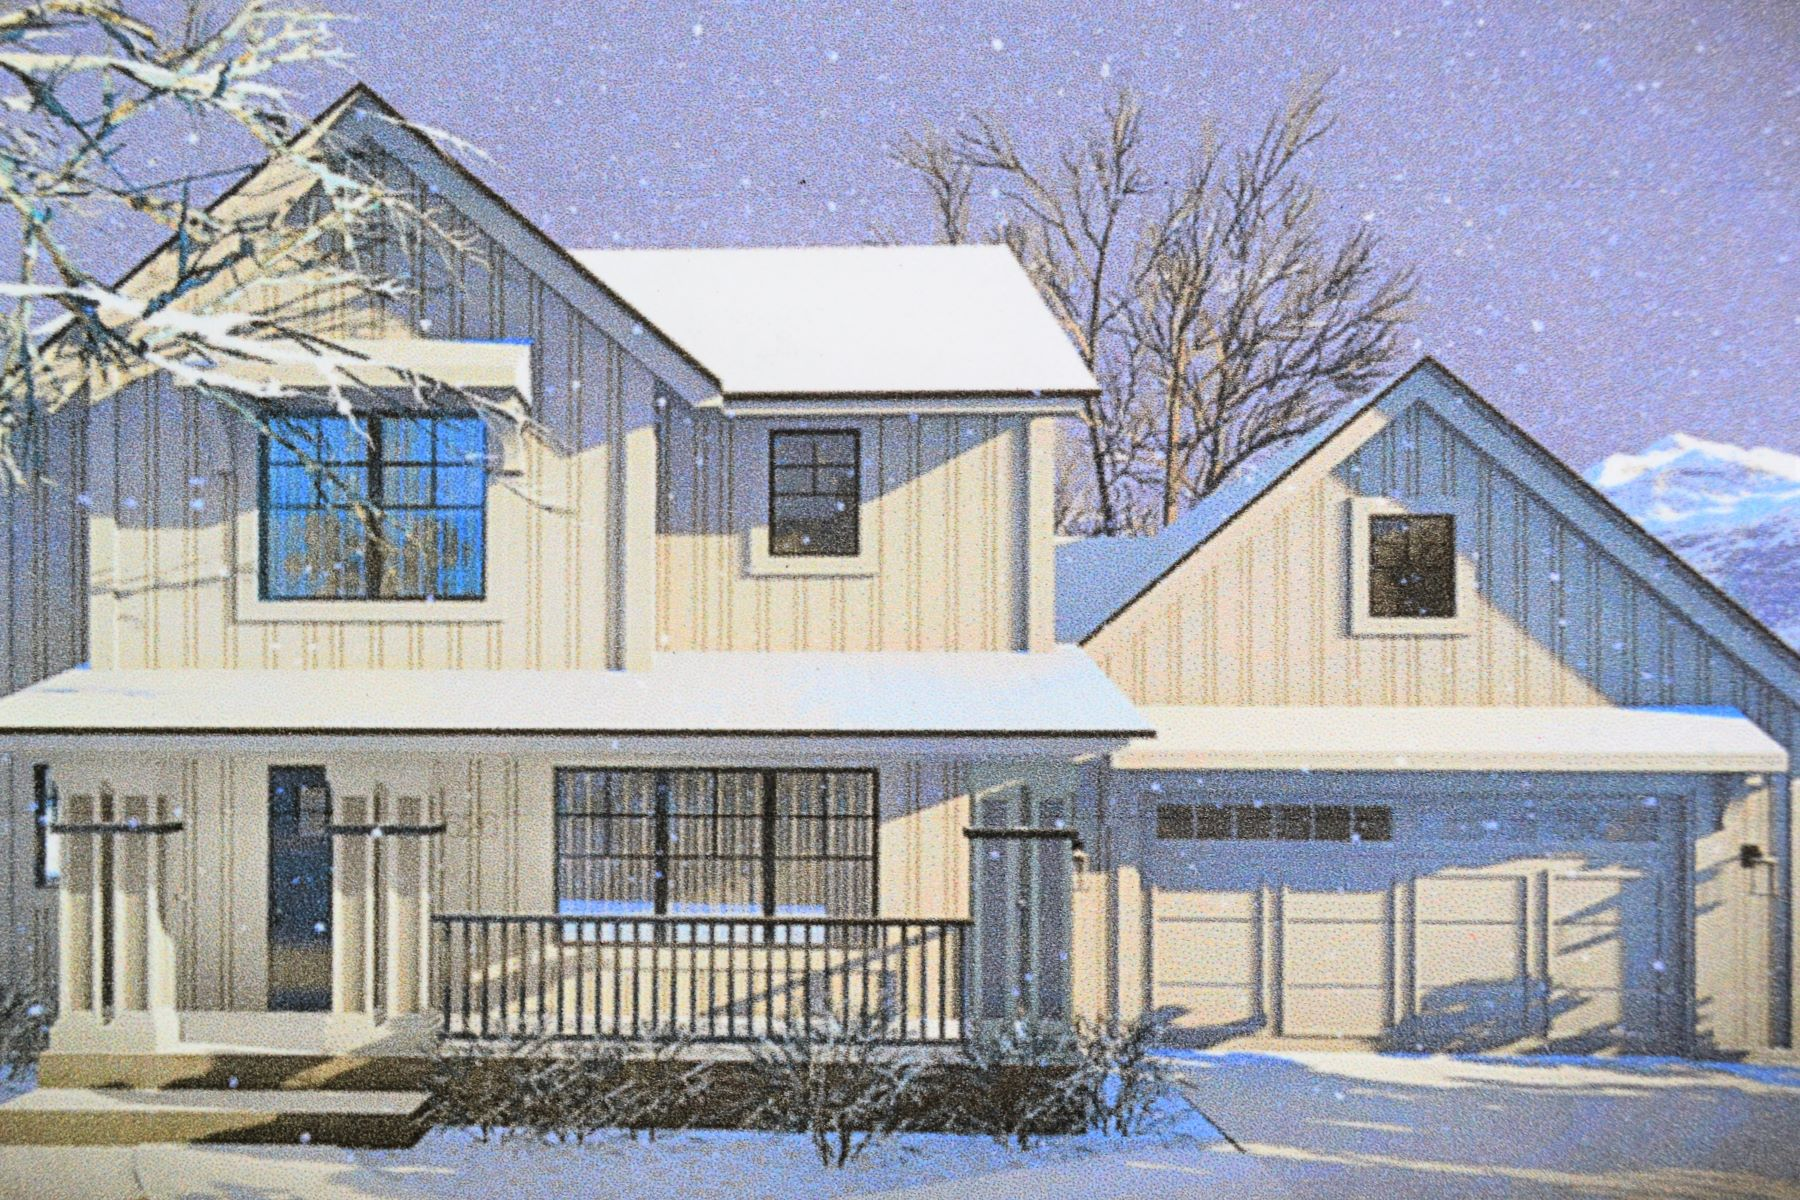 Single Family Homes for Sale at Custom designed Farmhouse to be built in Monkton 450 Breezy Hill Acres Rd 11 Monkton, Vermont 05473 United States